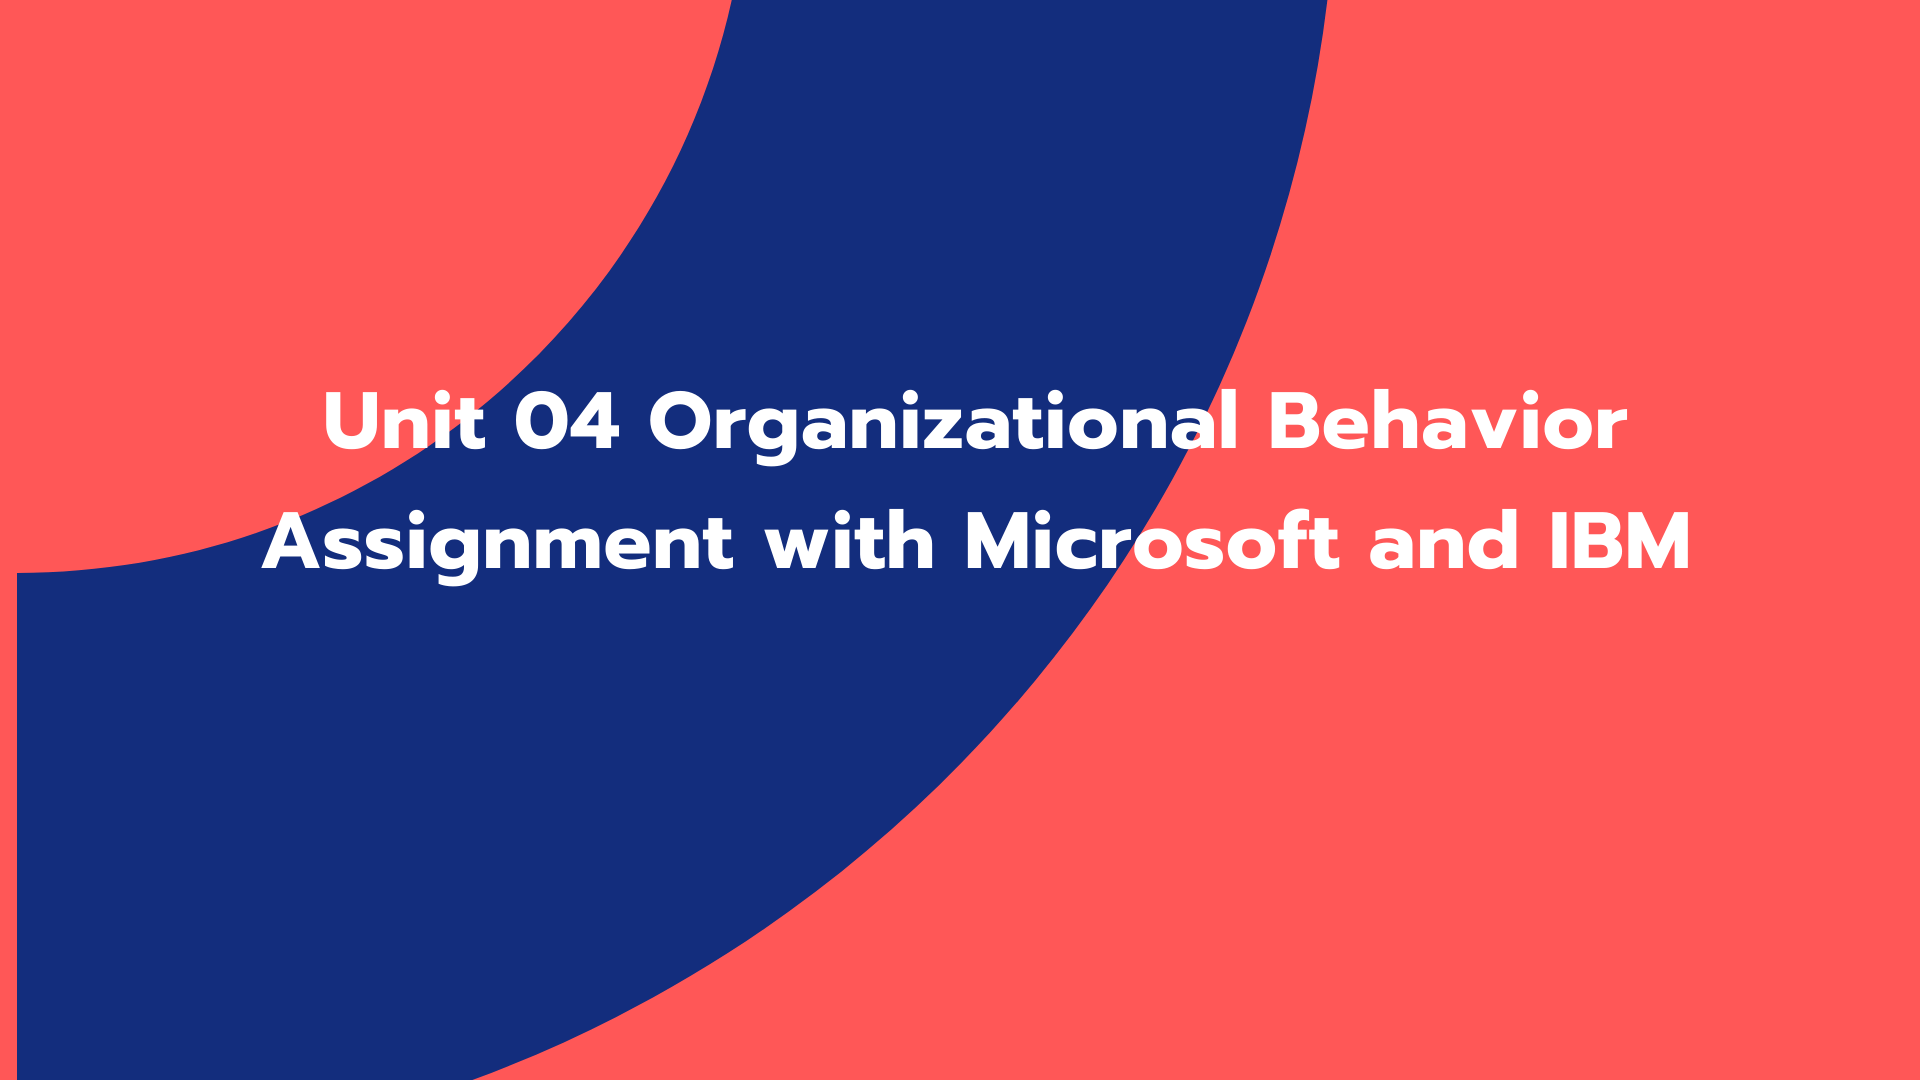 Organisational Behavior Assignment at The University of Wales